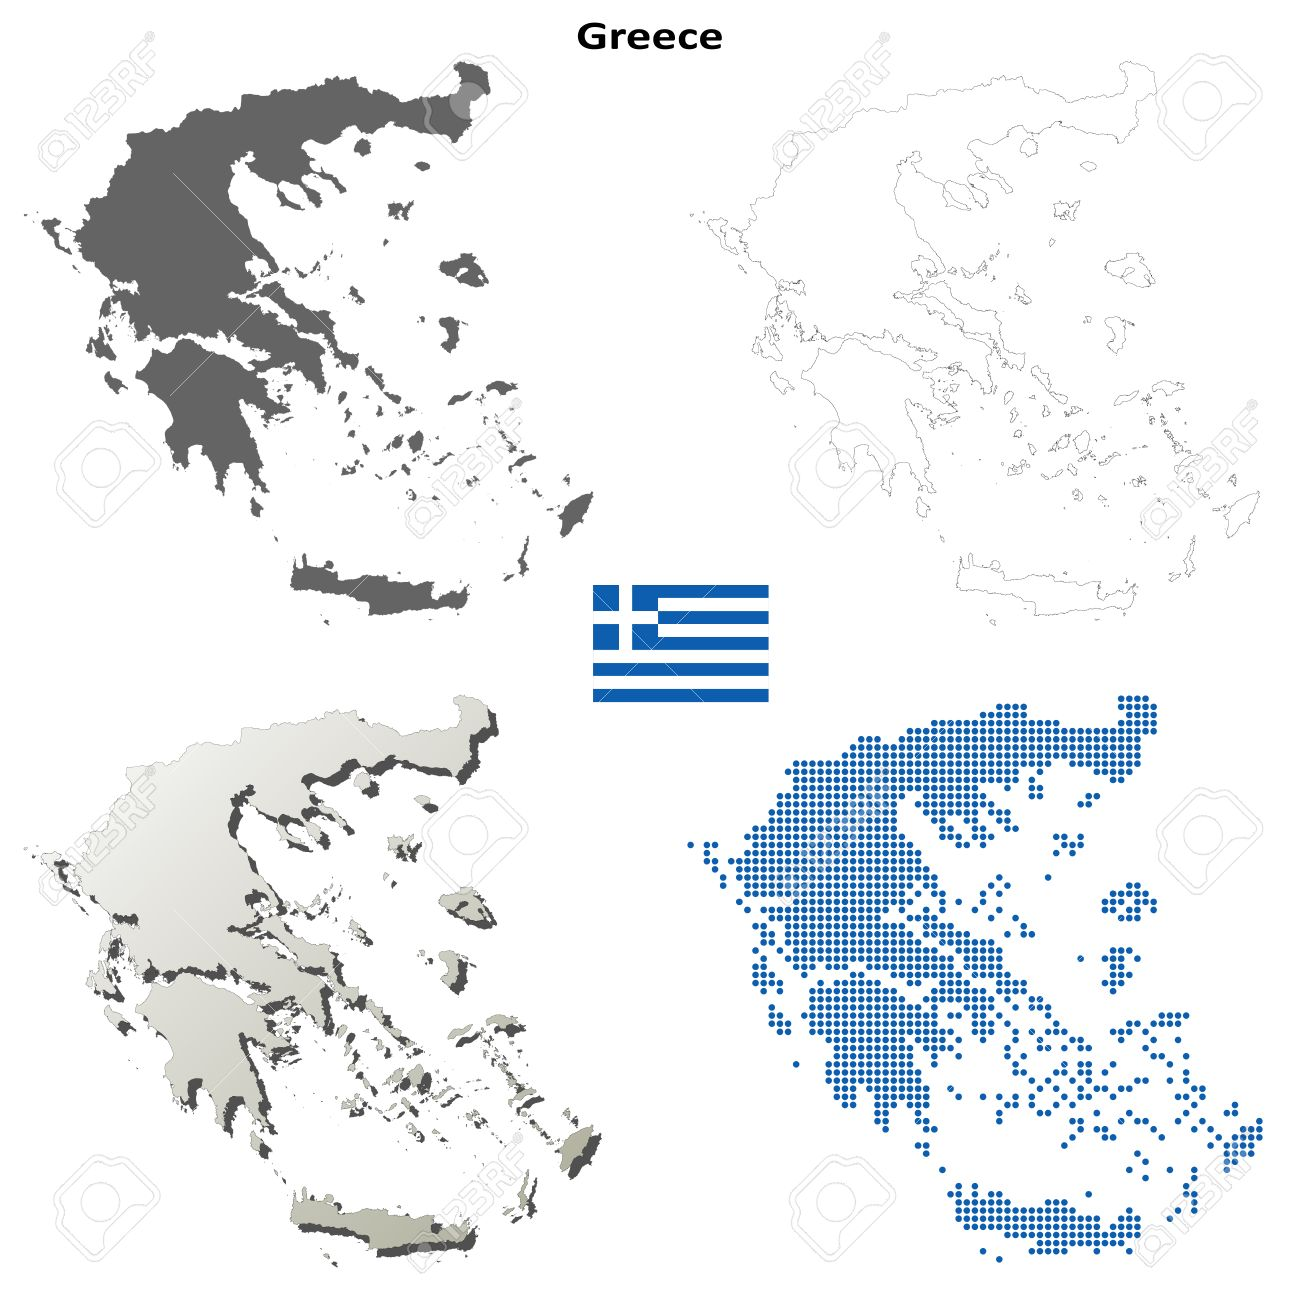 Greece Map Blank.Greece Blank Detailed Vector Outline Map Set Royalty Free Cliparts